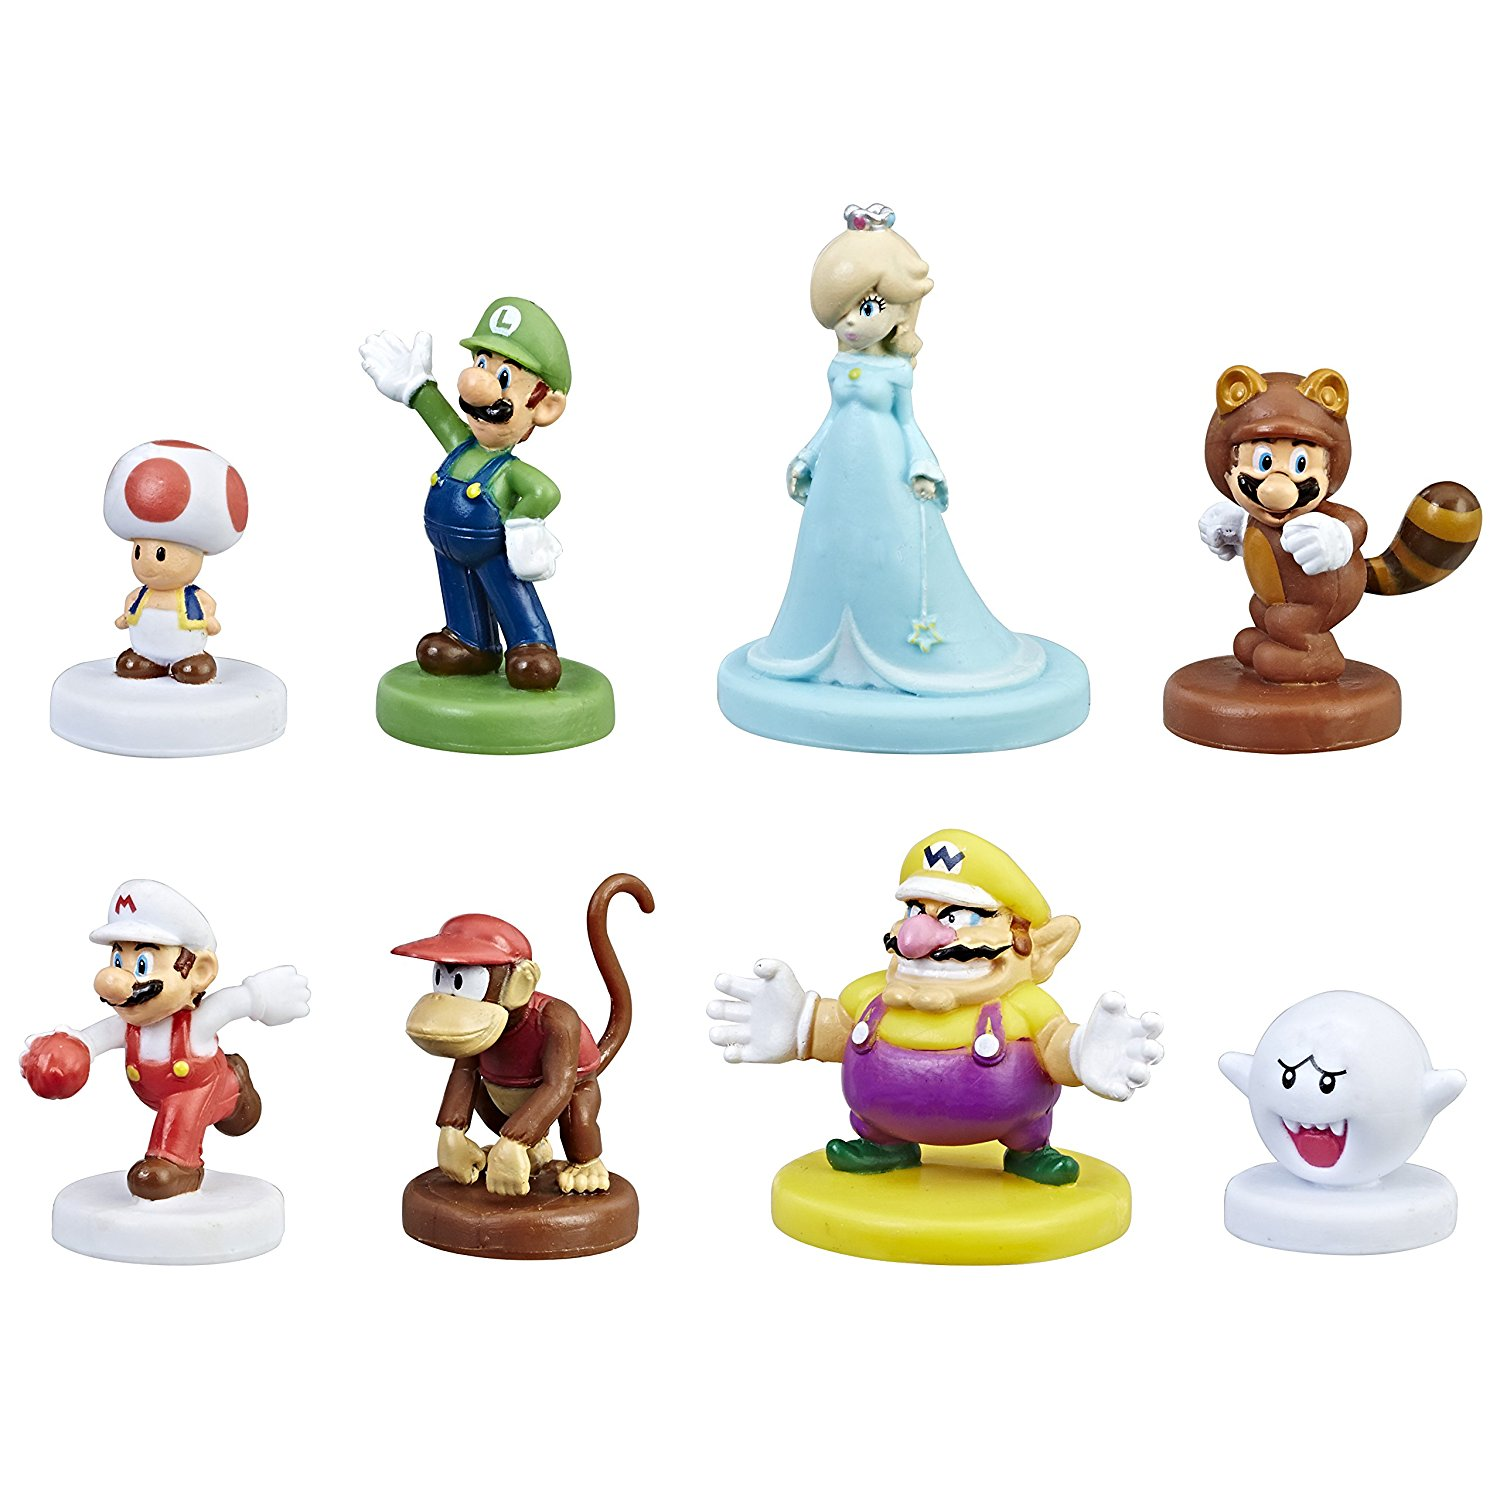 Figurines supplémentaires du Monopoly Gamer